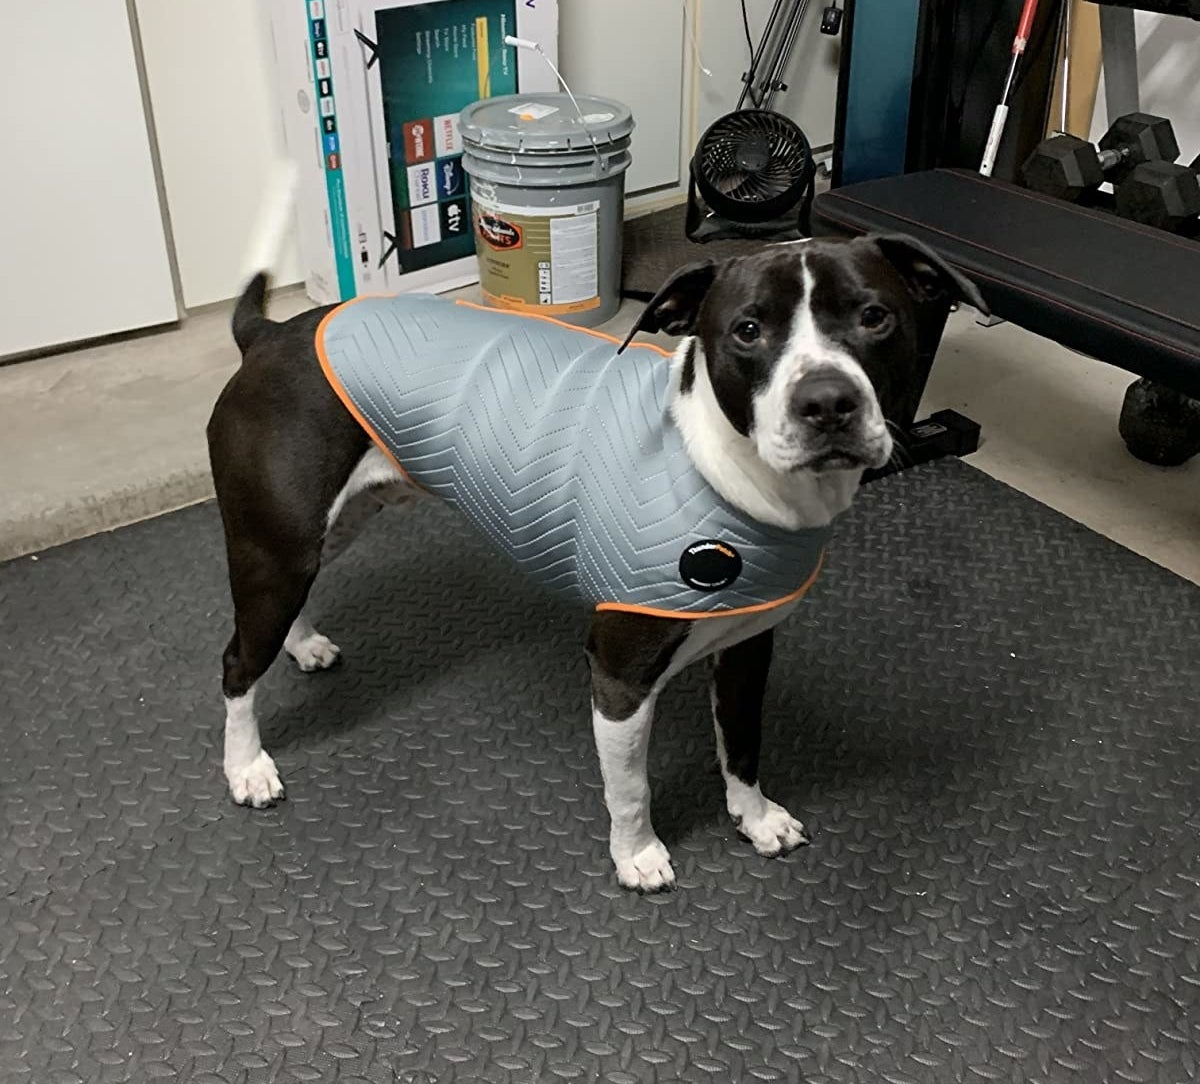 reviewer photo showing their dog wearing the anxiety jacket